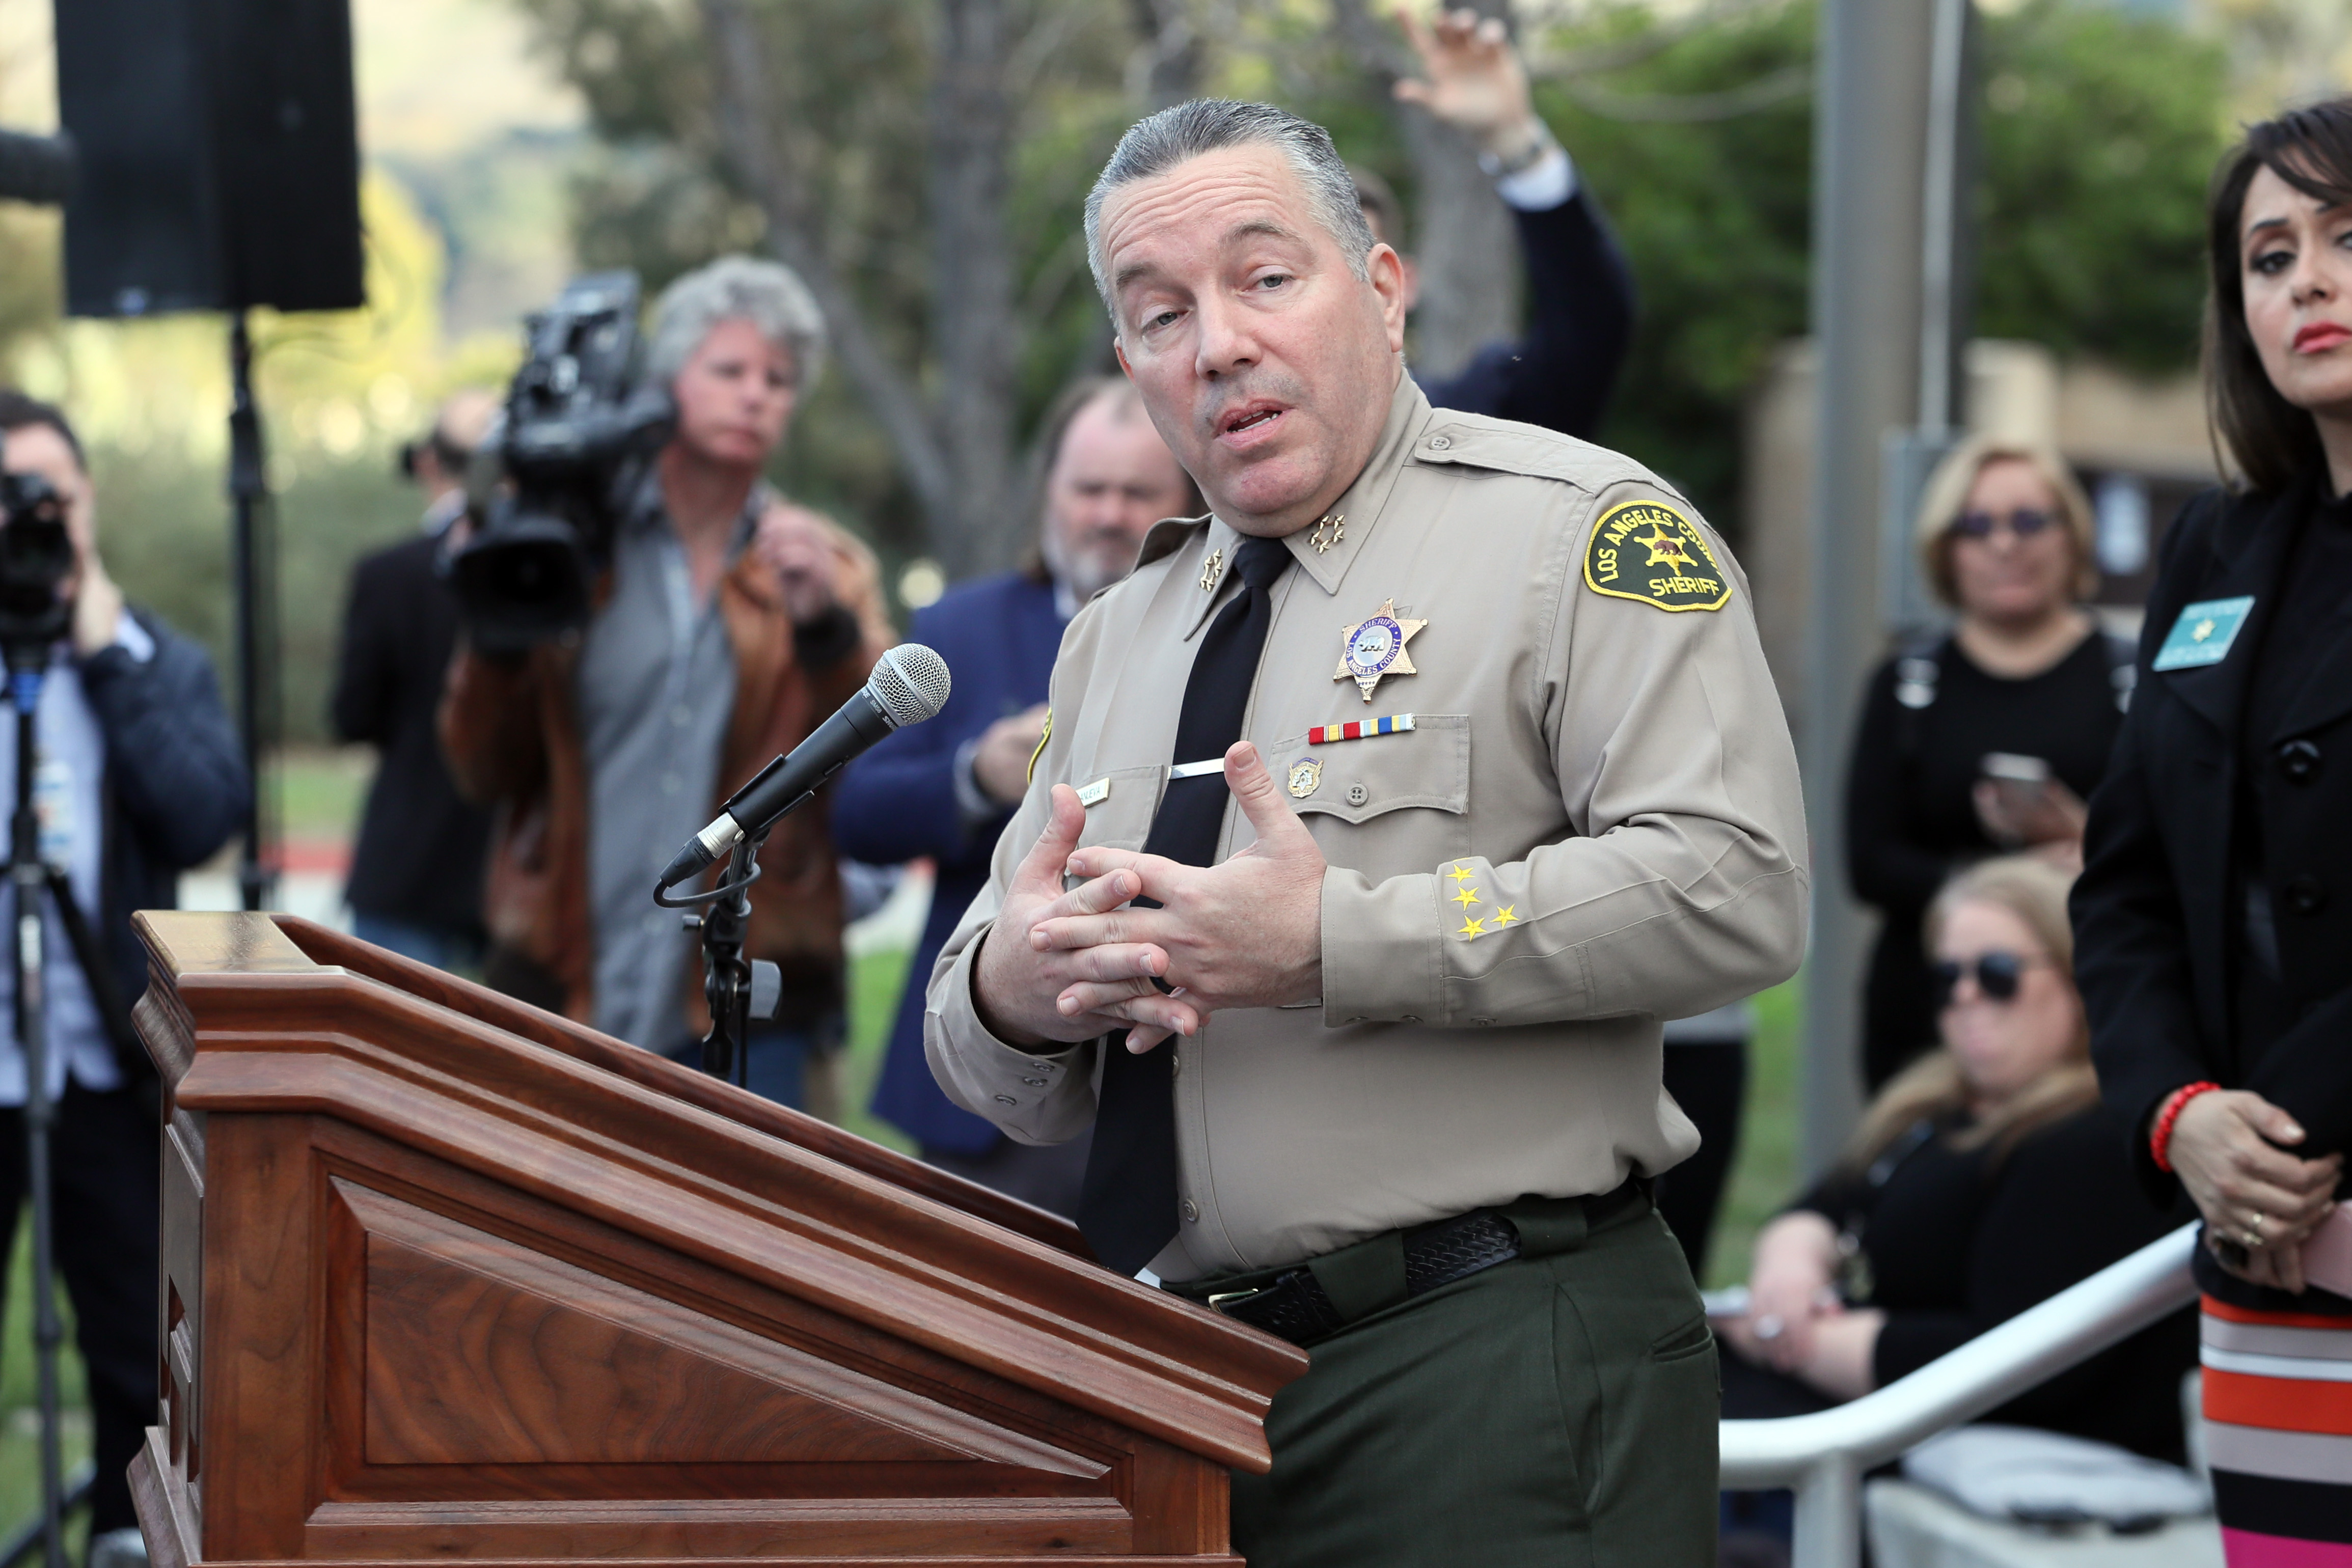 Sheriff Alex Villanueva says he ordered deputies to delete photos from the Bryant crime scene. (Photo by Josh Lefkowitz/Getty Images)